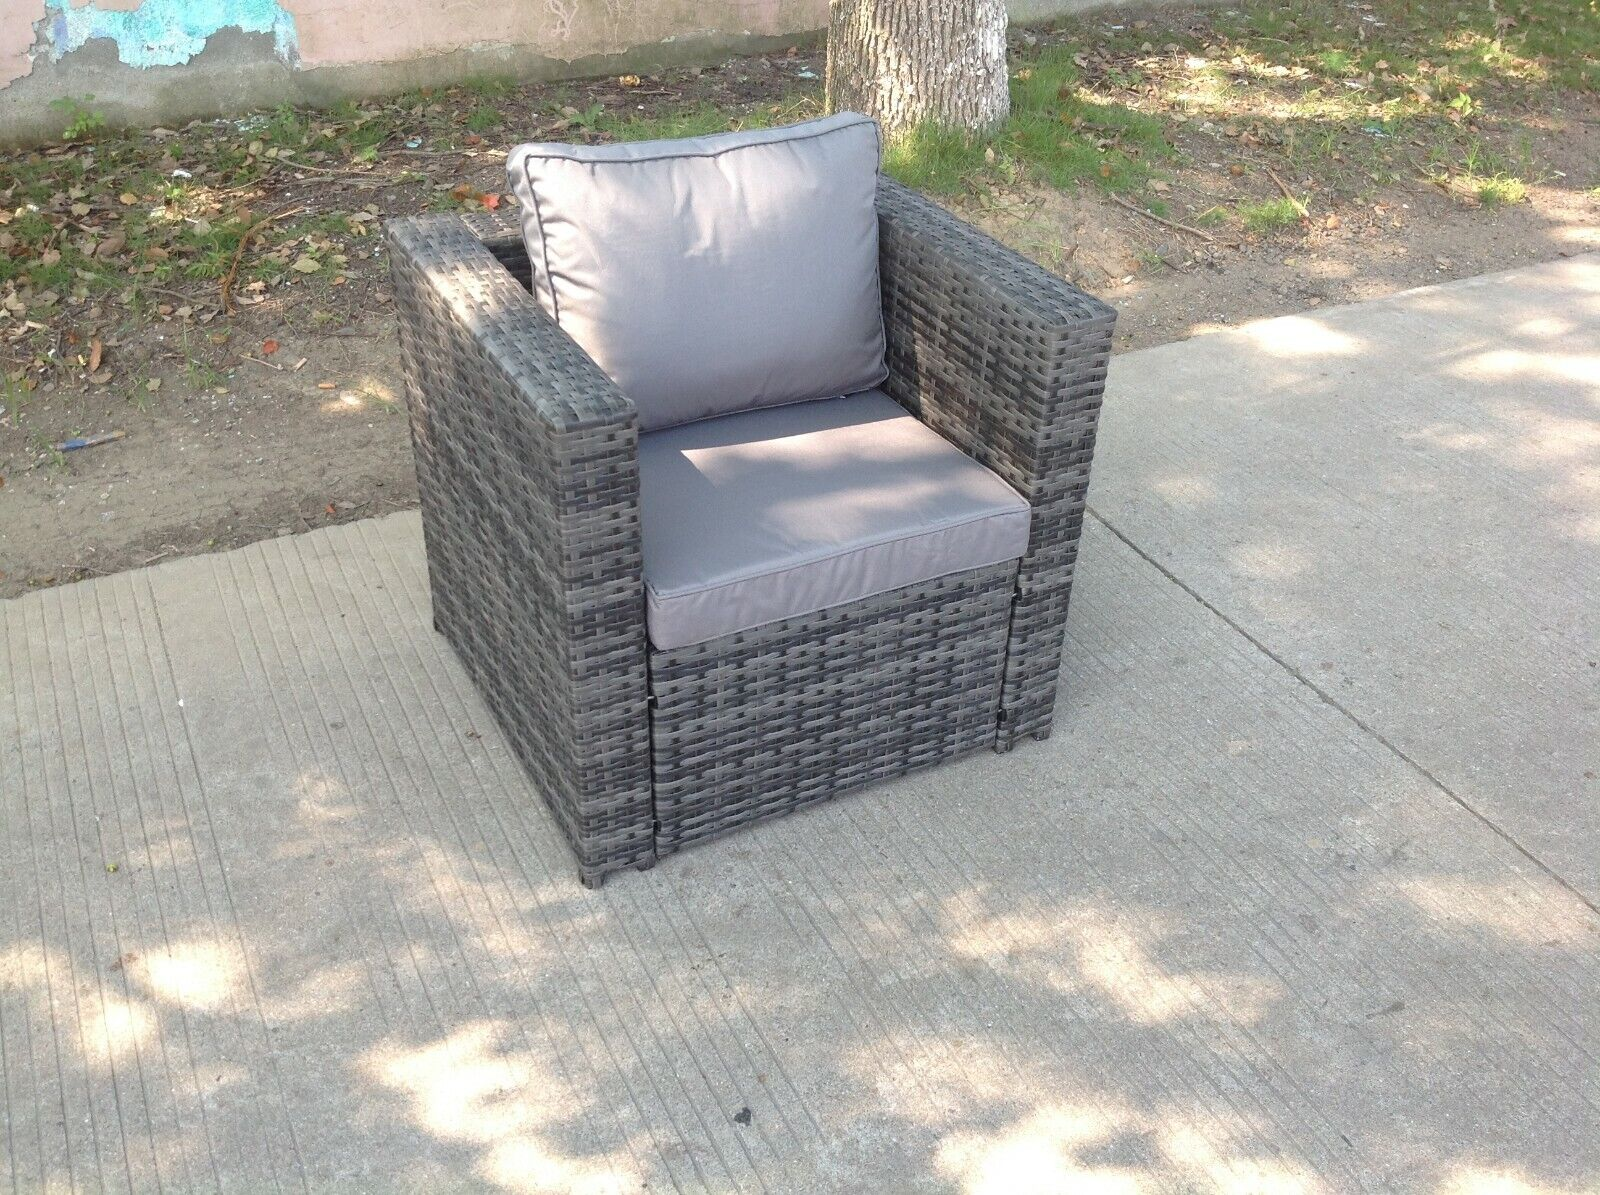 Garden Furniture - rattan single sofa chair patio outdoor garden furniture sofa set with cushion